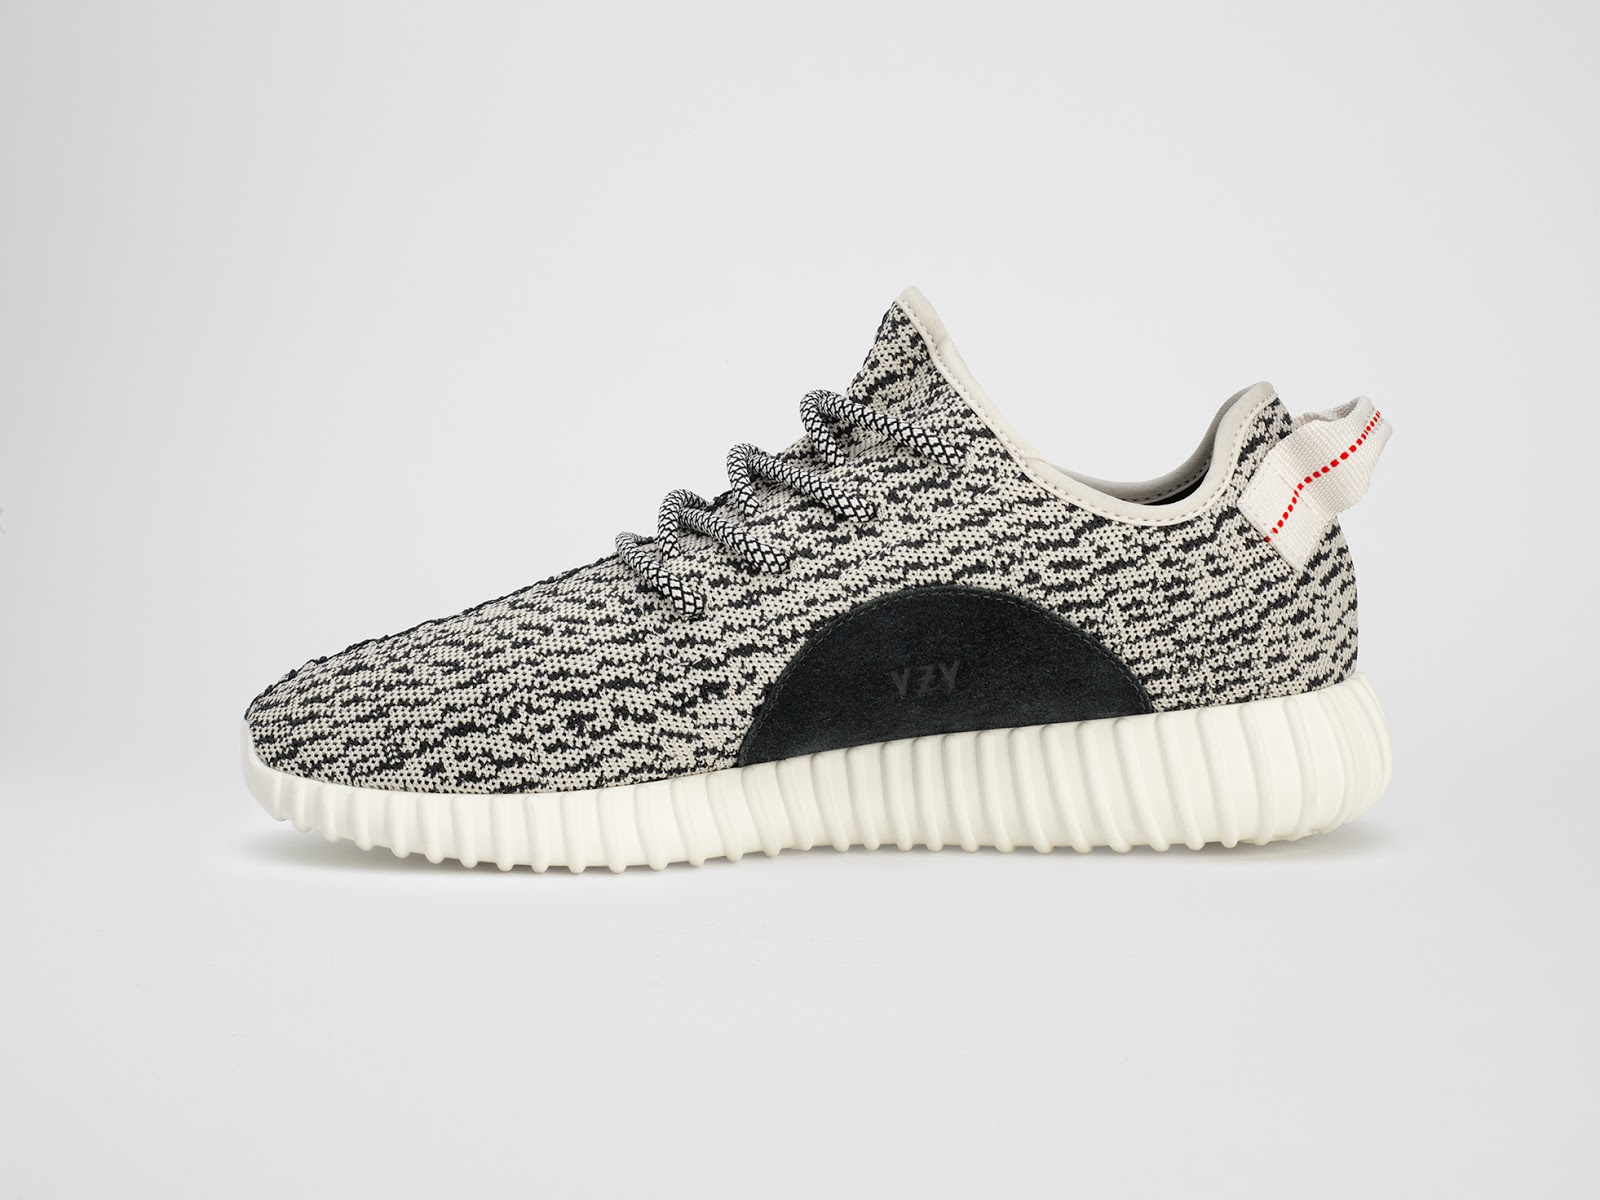 YEEZY BOOST 350: Kanye West x adidas Originals